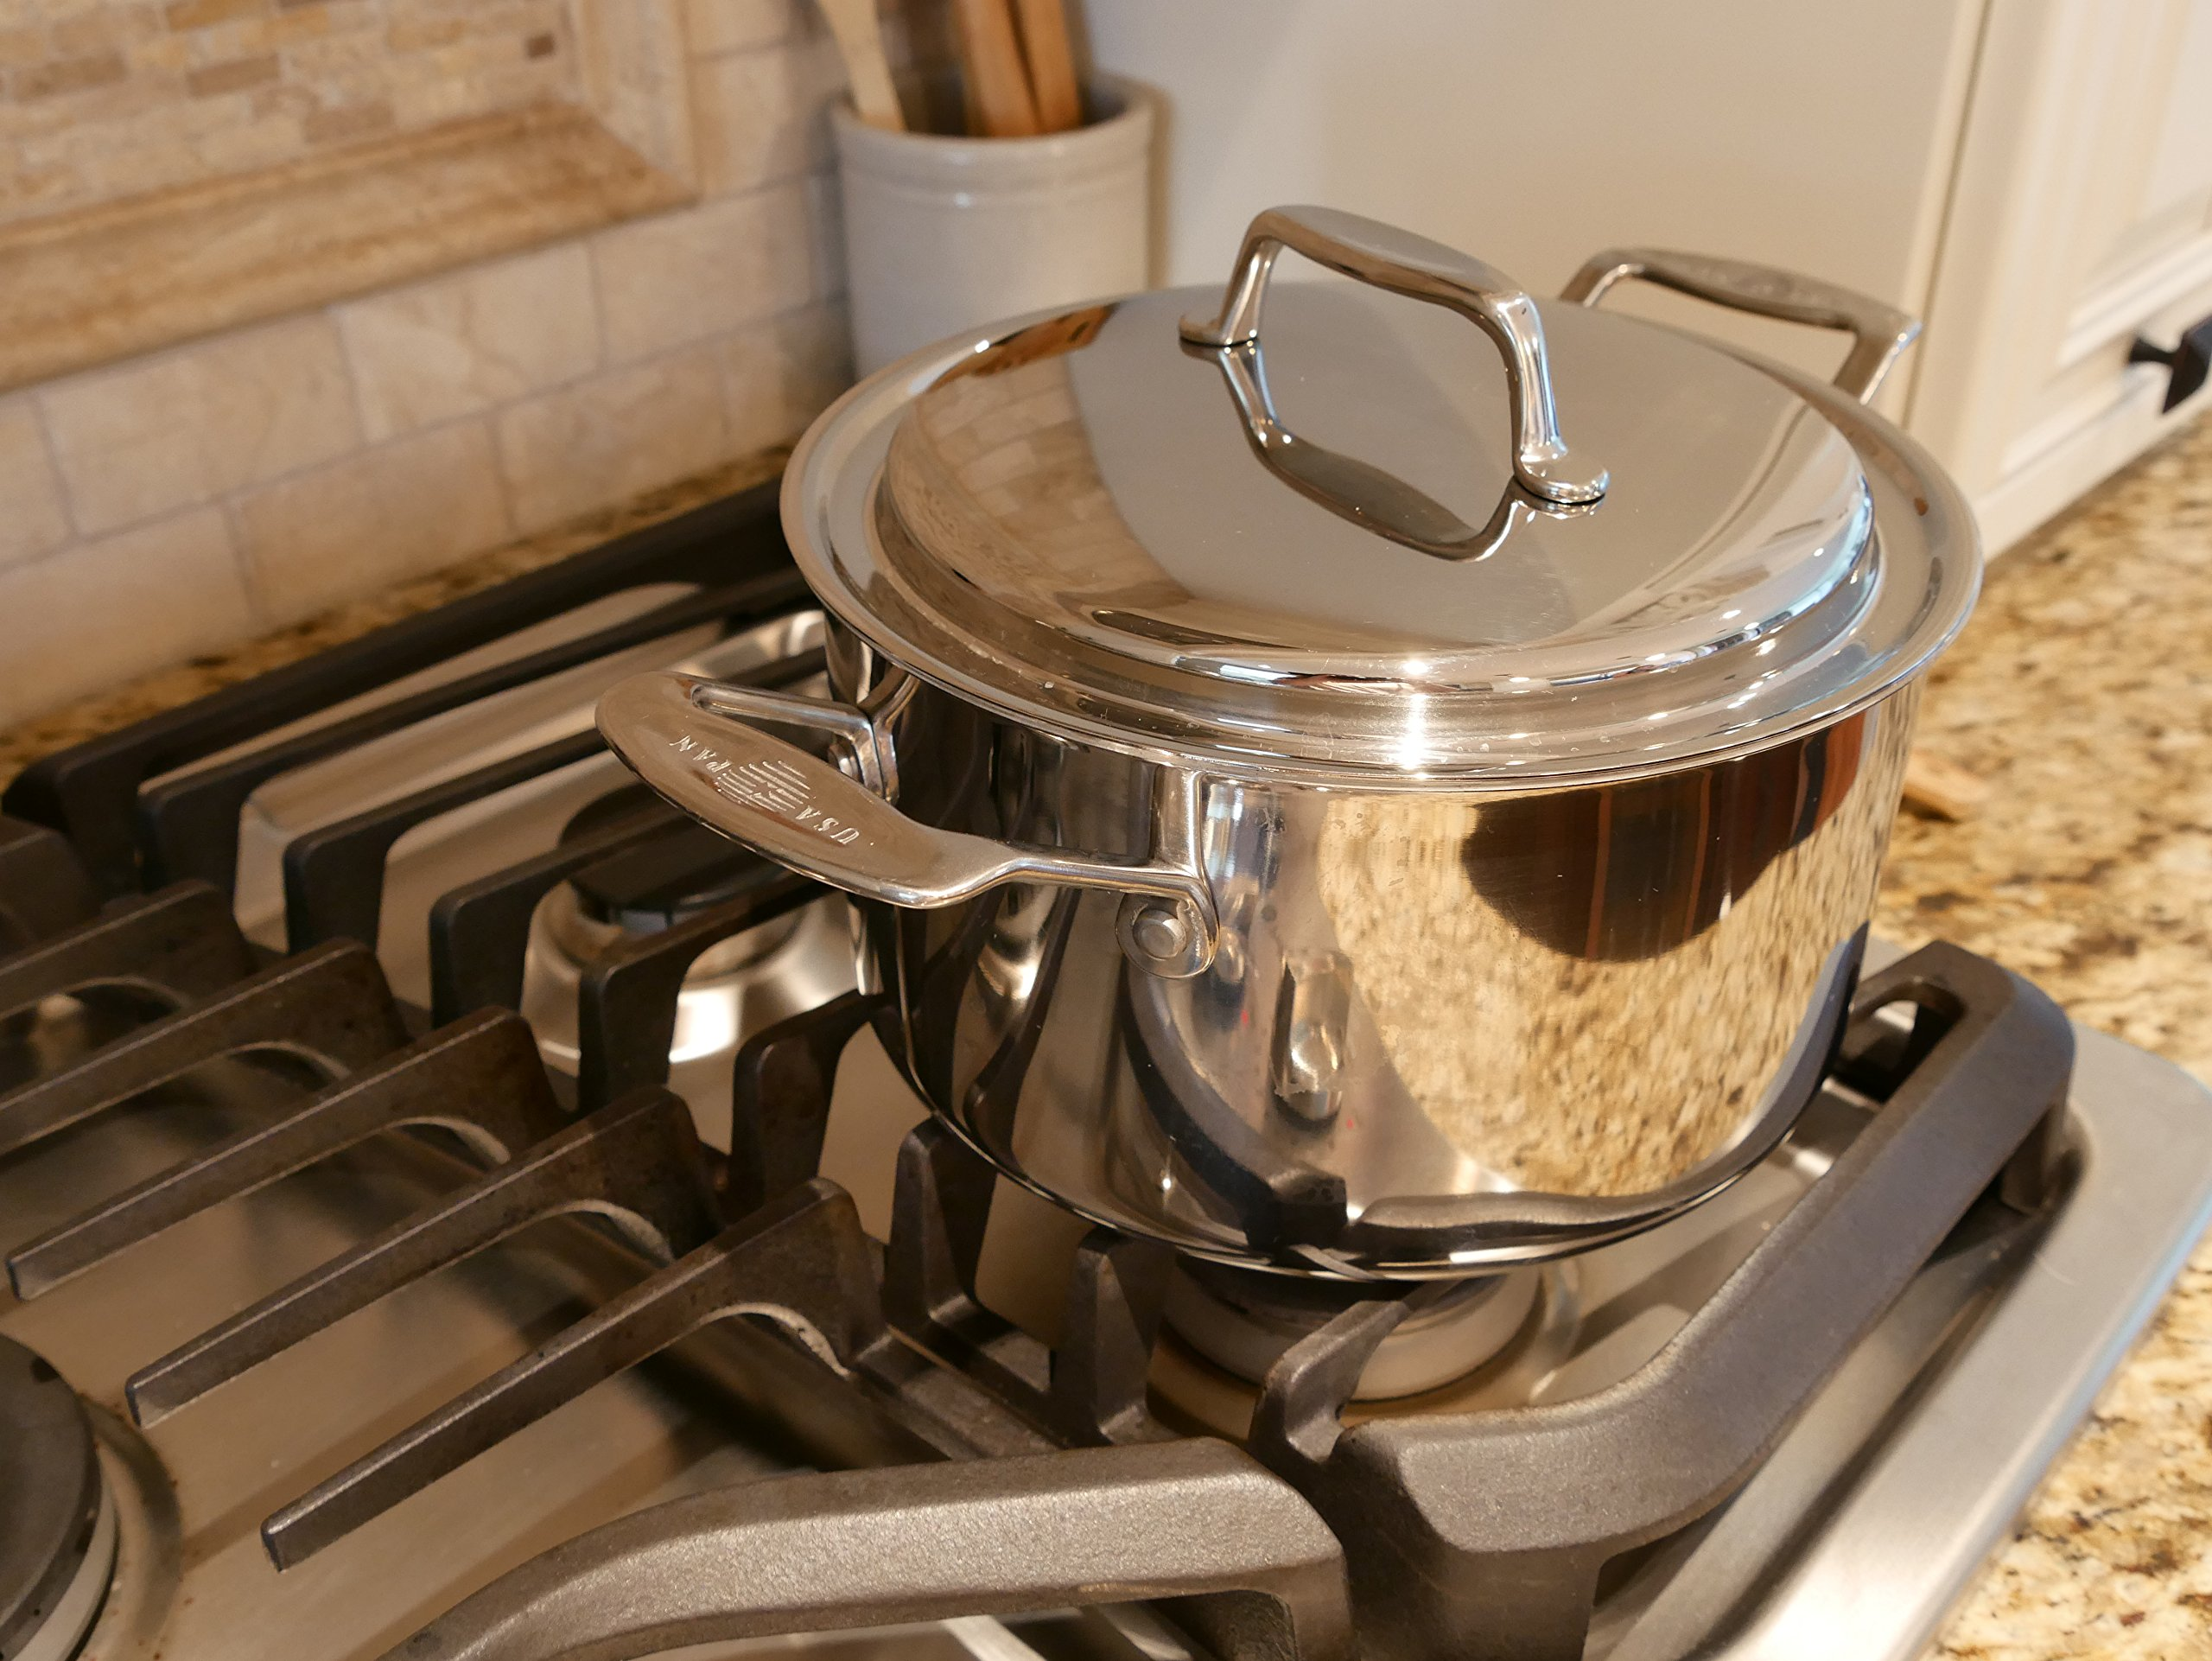 USA Pan Cookware 5-Ply Stainless Steel 8 Piece Cookware Set, Oven and Dishwasher Safe, Made in the USA by USA Pan (Image #5)